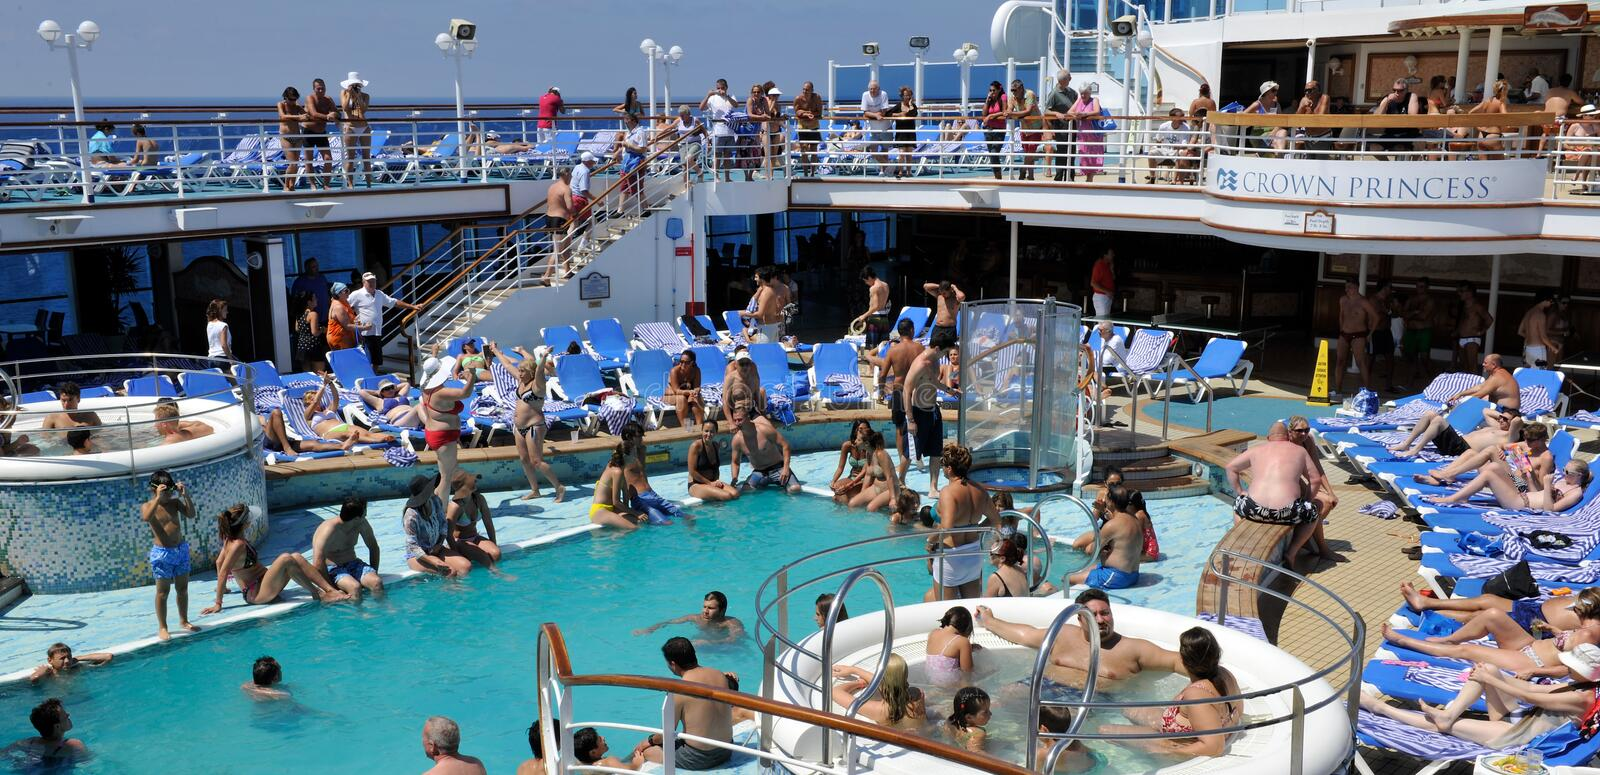 Party At Poolside Cruise Ship Editorial Stock Photo